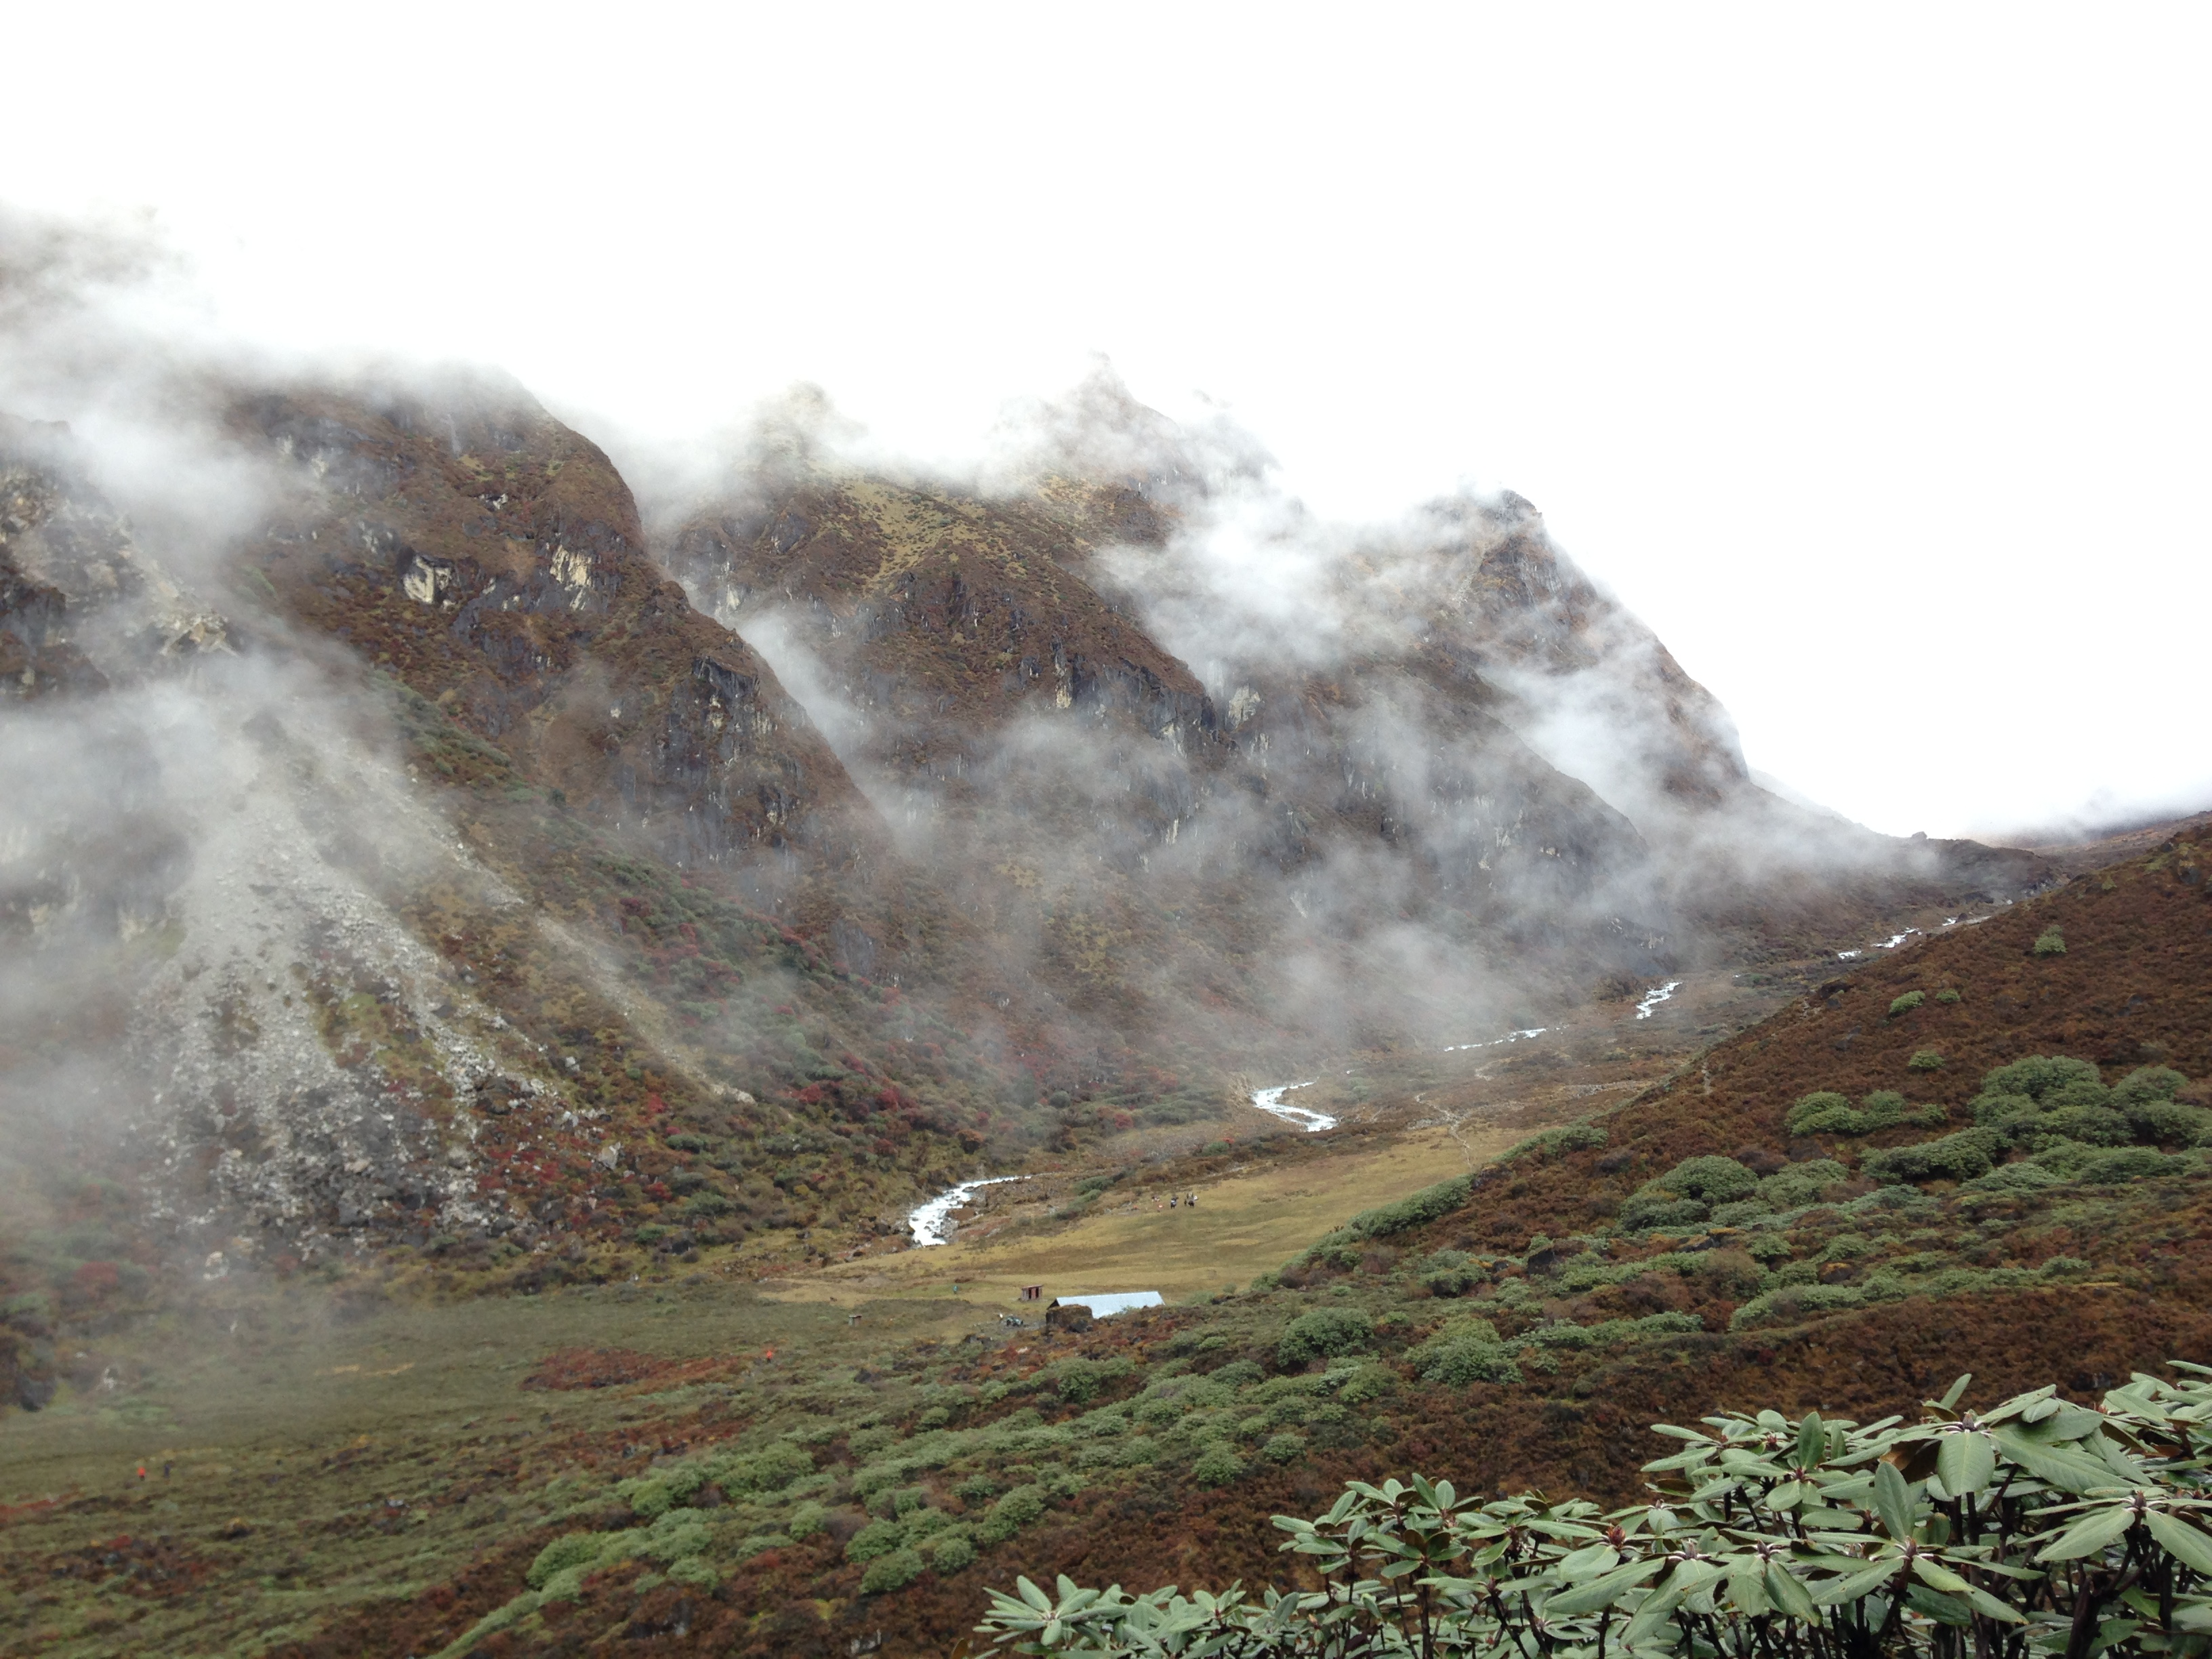 Misty Mountains: Goechala Trek